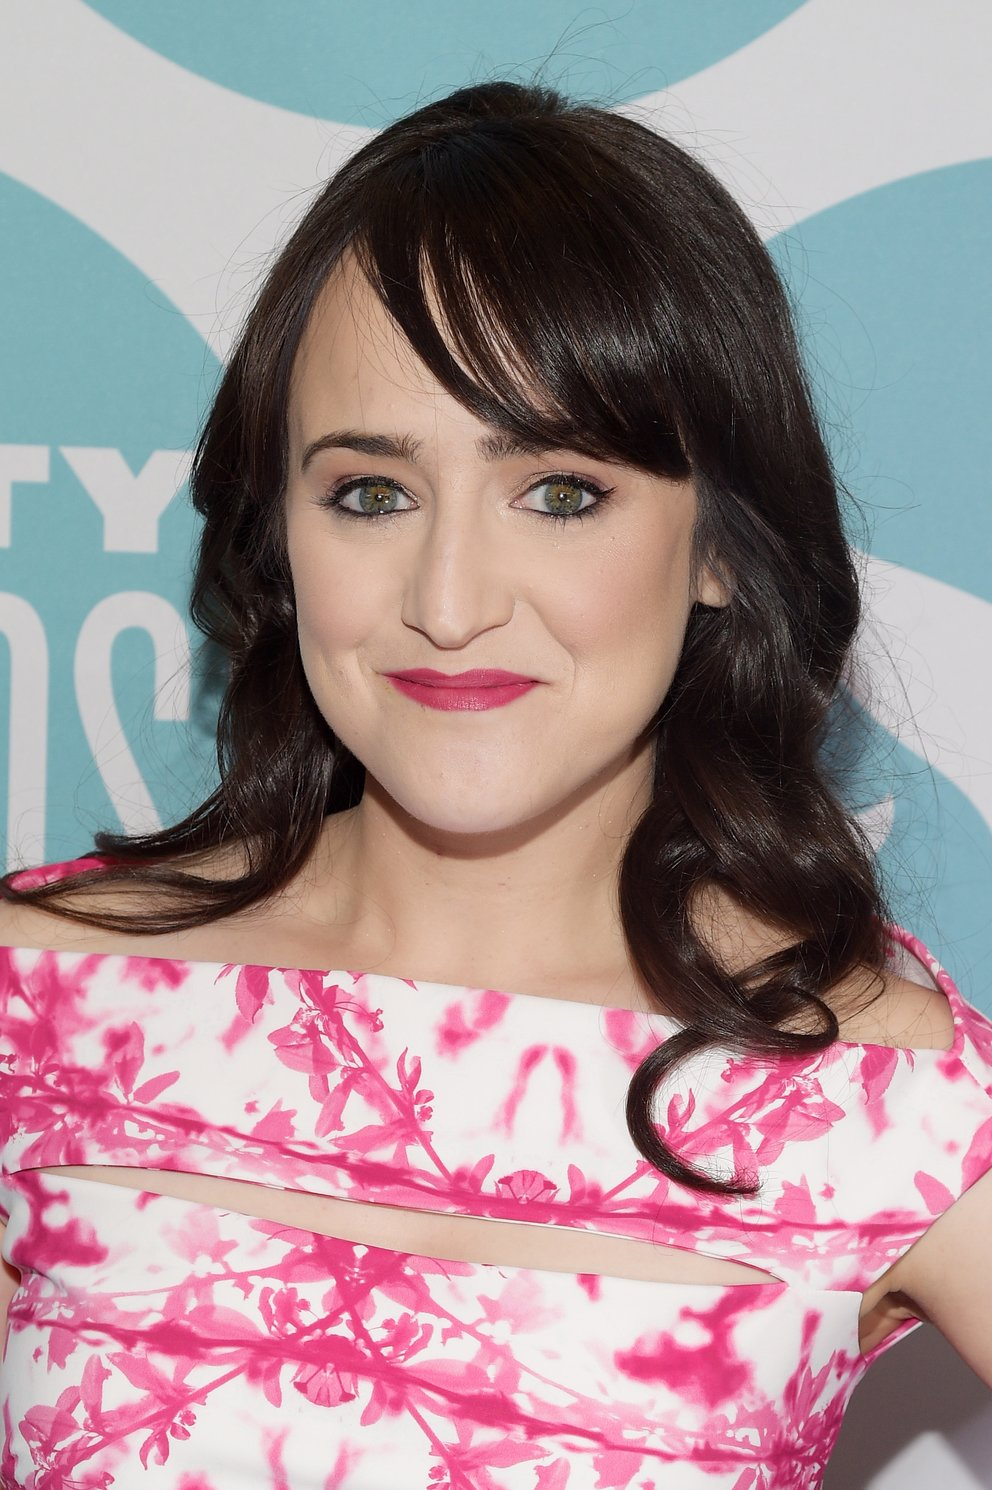 The 9th Annual Shorty Awards - Teal Carpet Arrivals